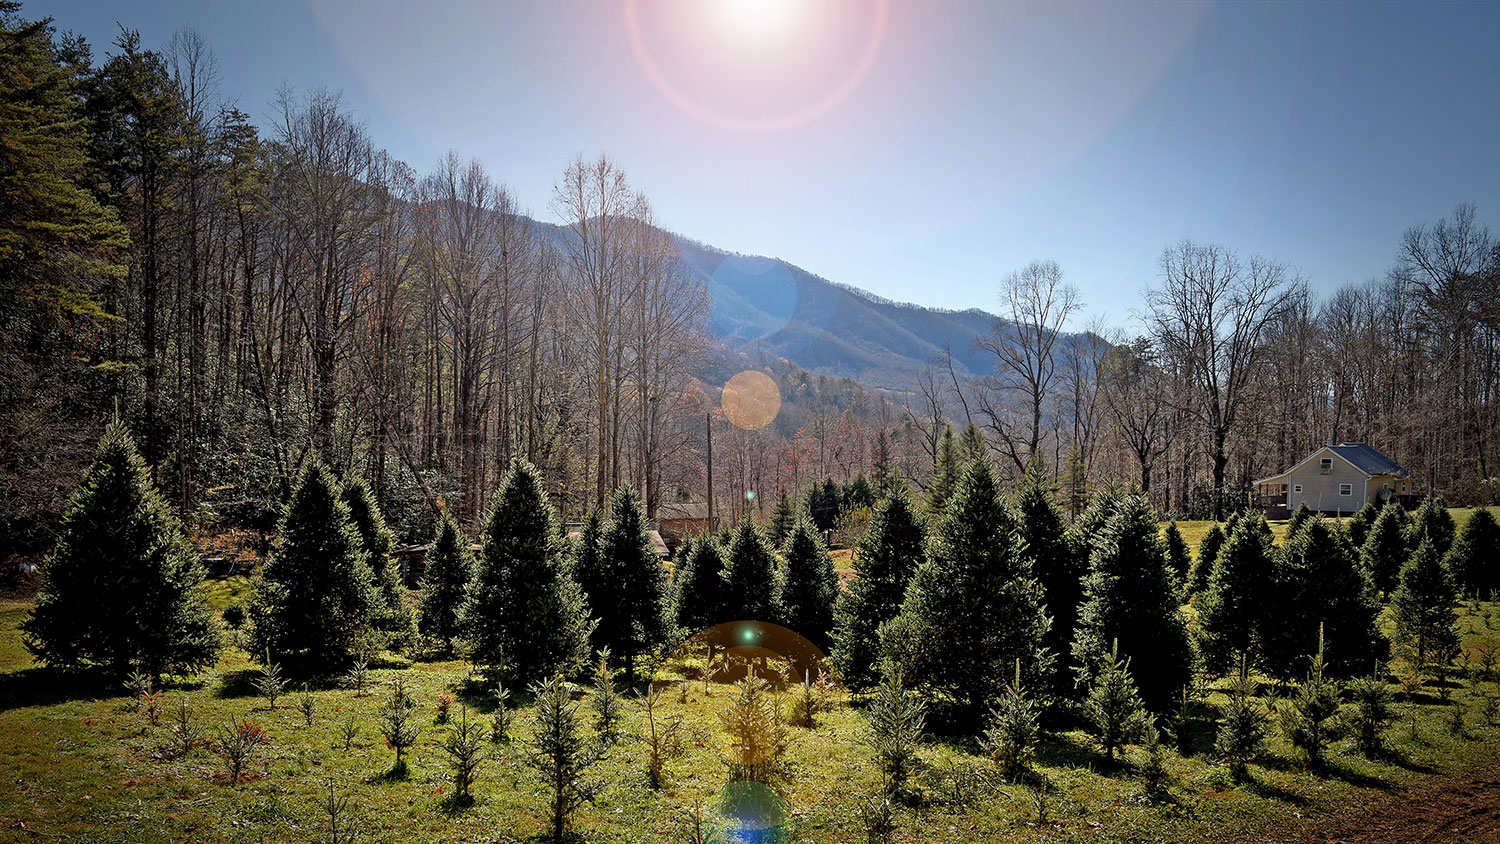 Christmas tree farm - NCState Helps Homegrown Holiday Hobby - Forestry and Environmental Resources NCState University